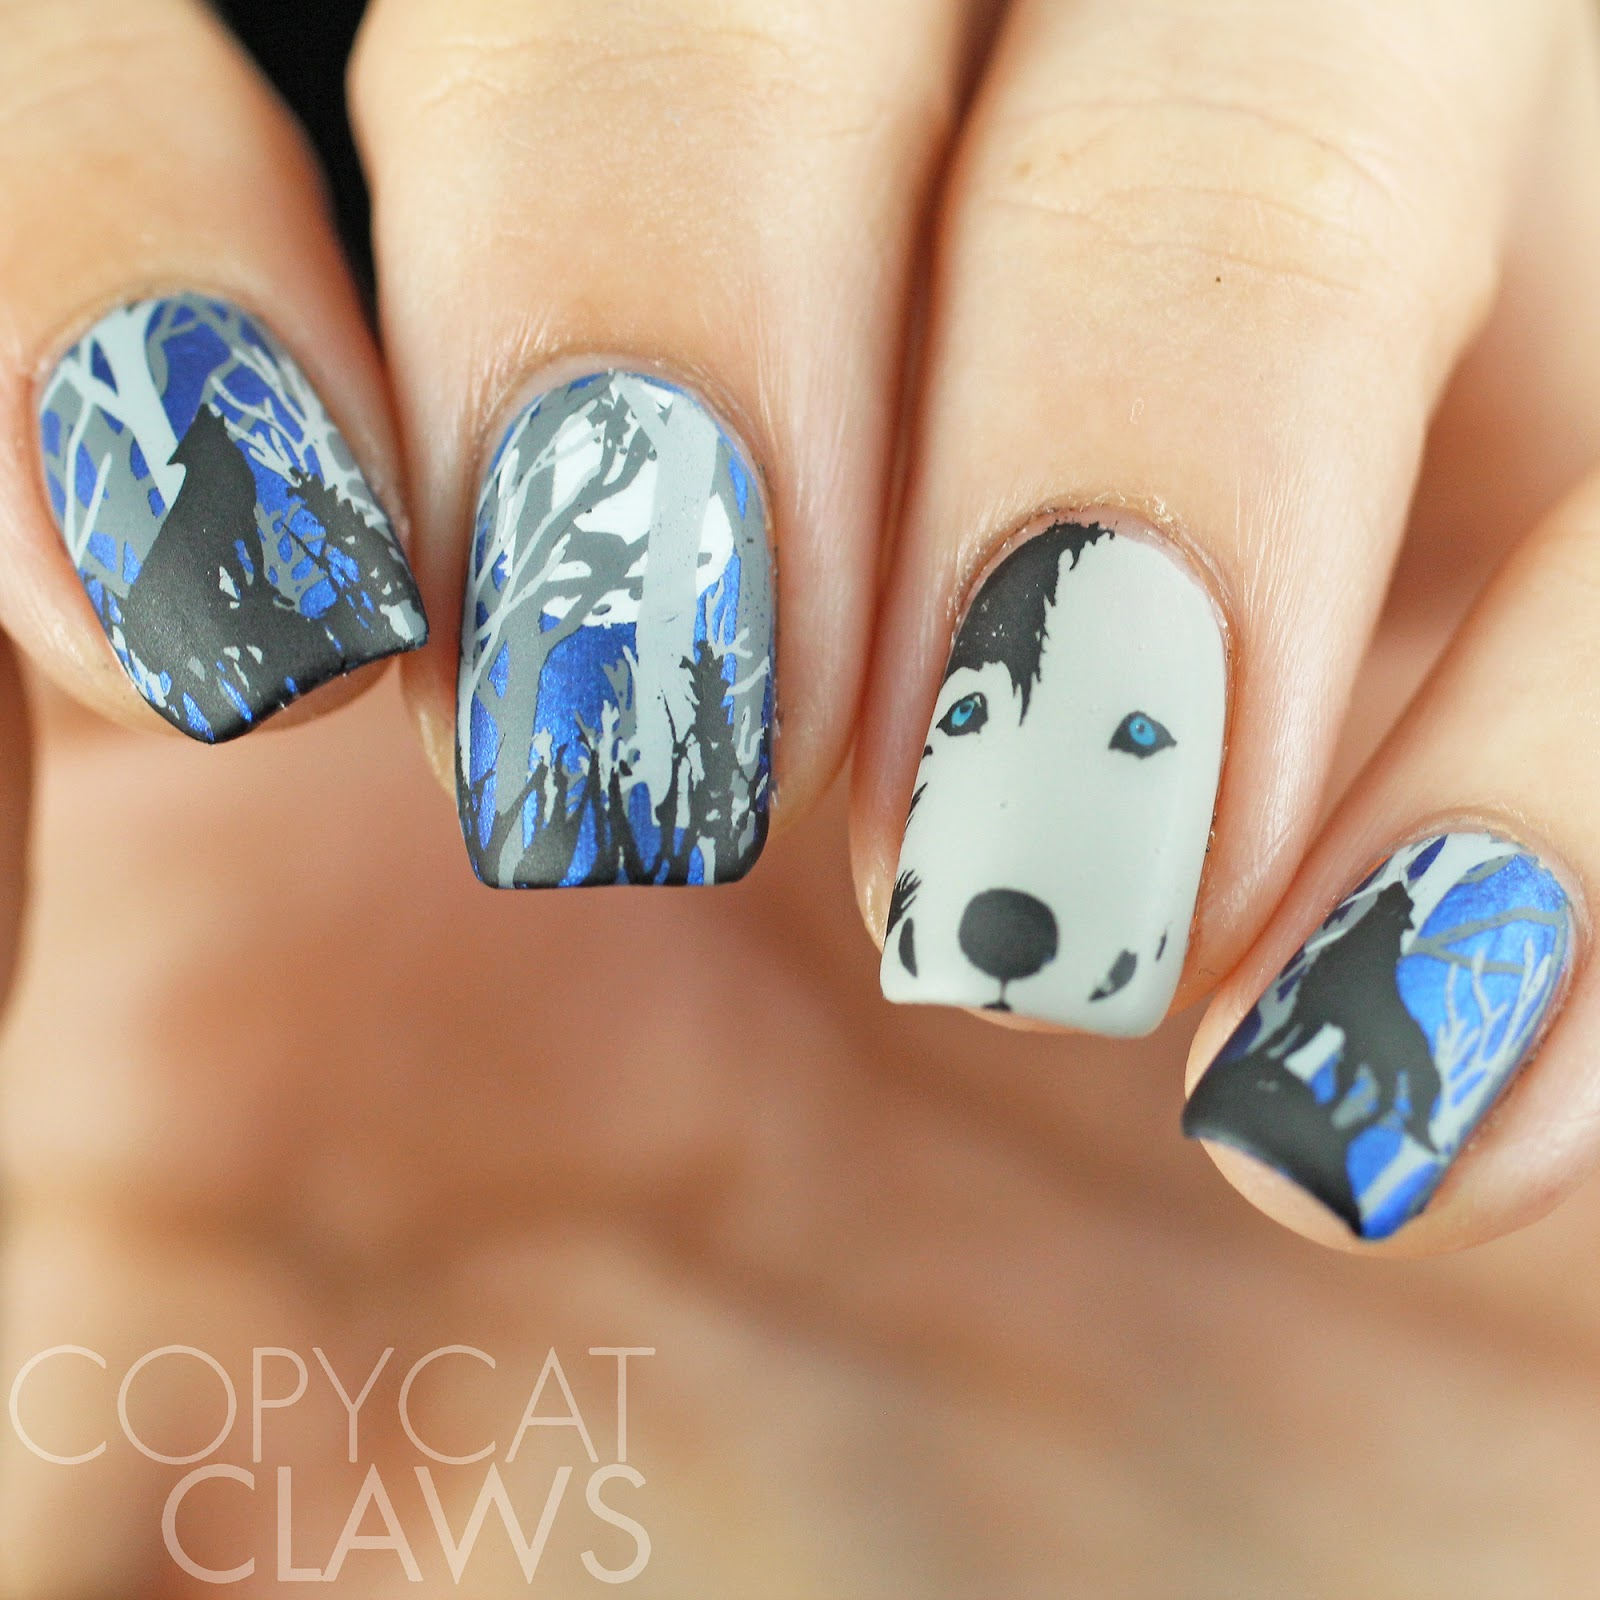 Copycat Claws Blue Color Block Nail Art: Copycat Claws: Wolf Nail Stamping